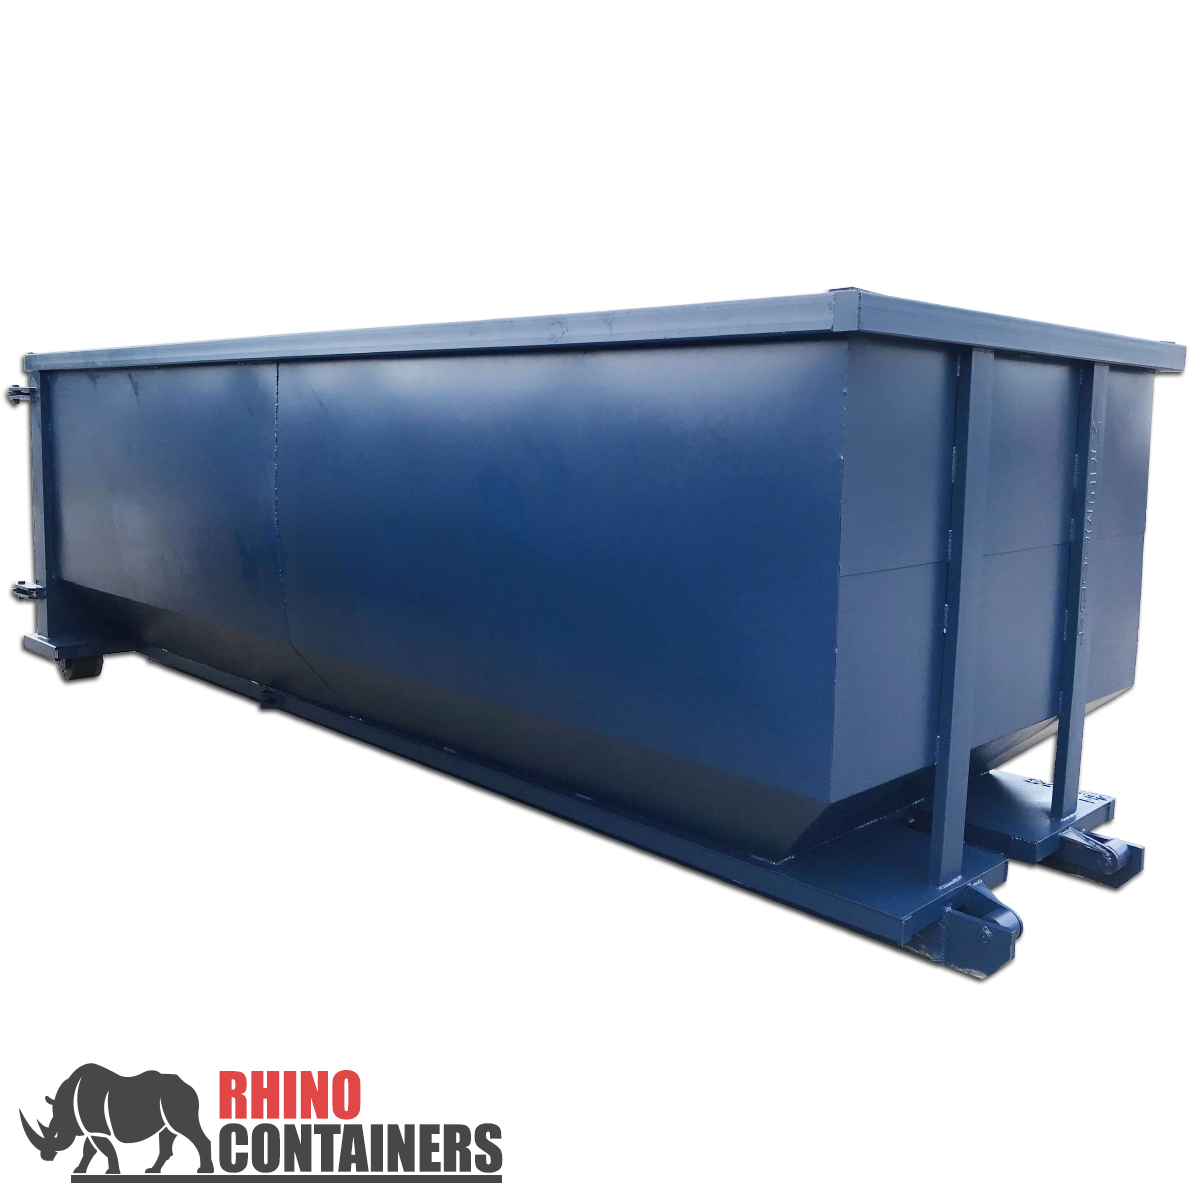 30 Yd Roll Off Container Rhino Containers